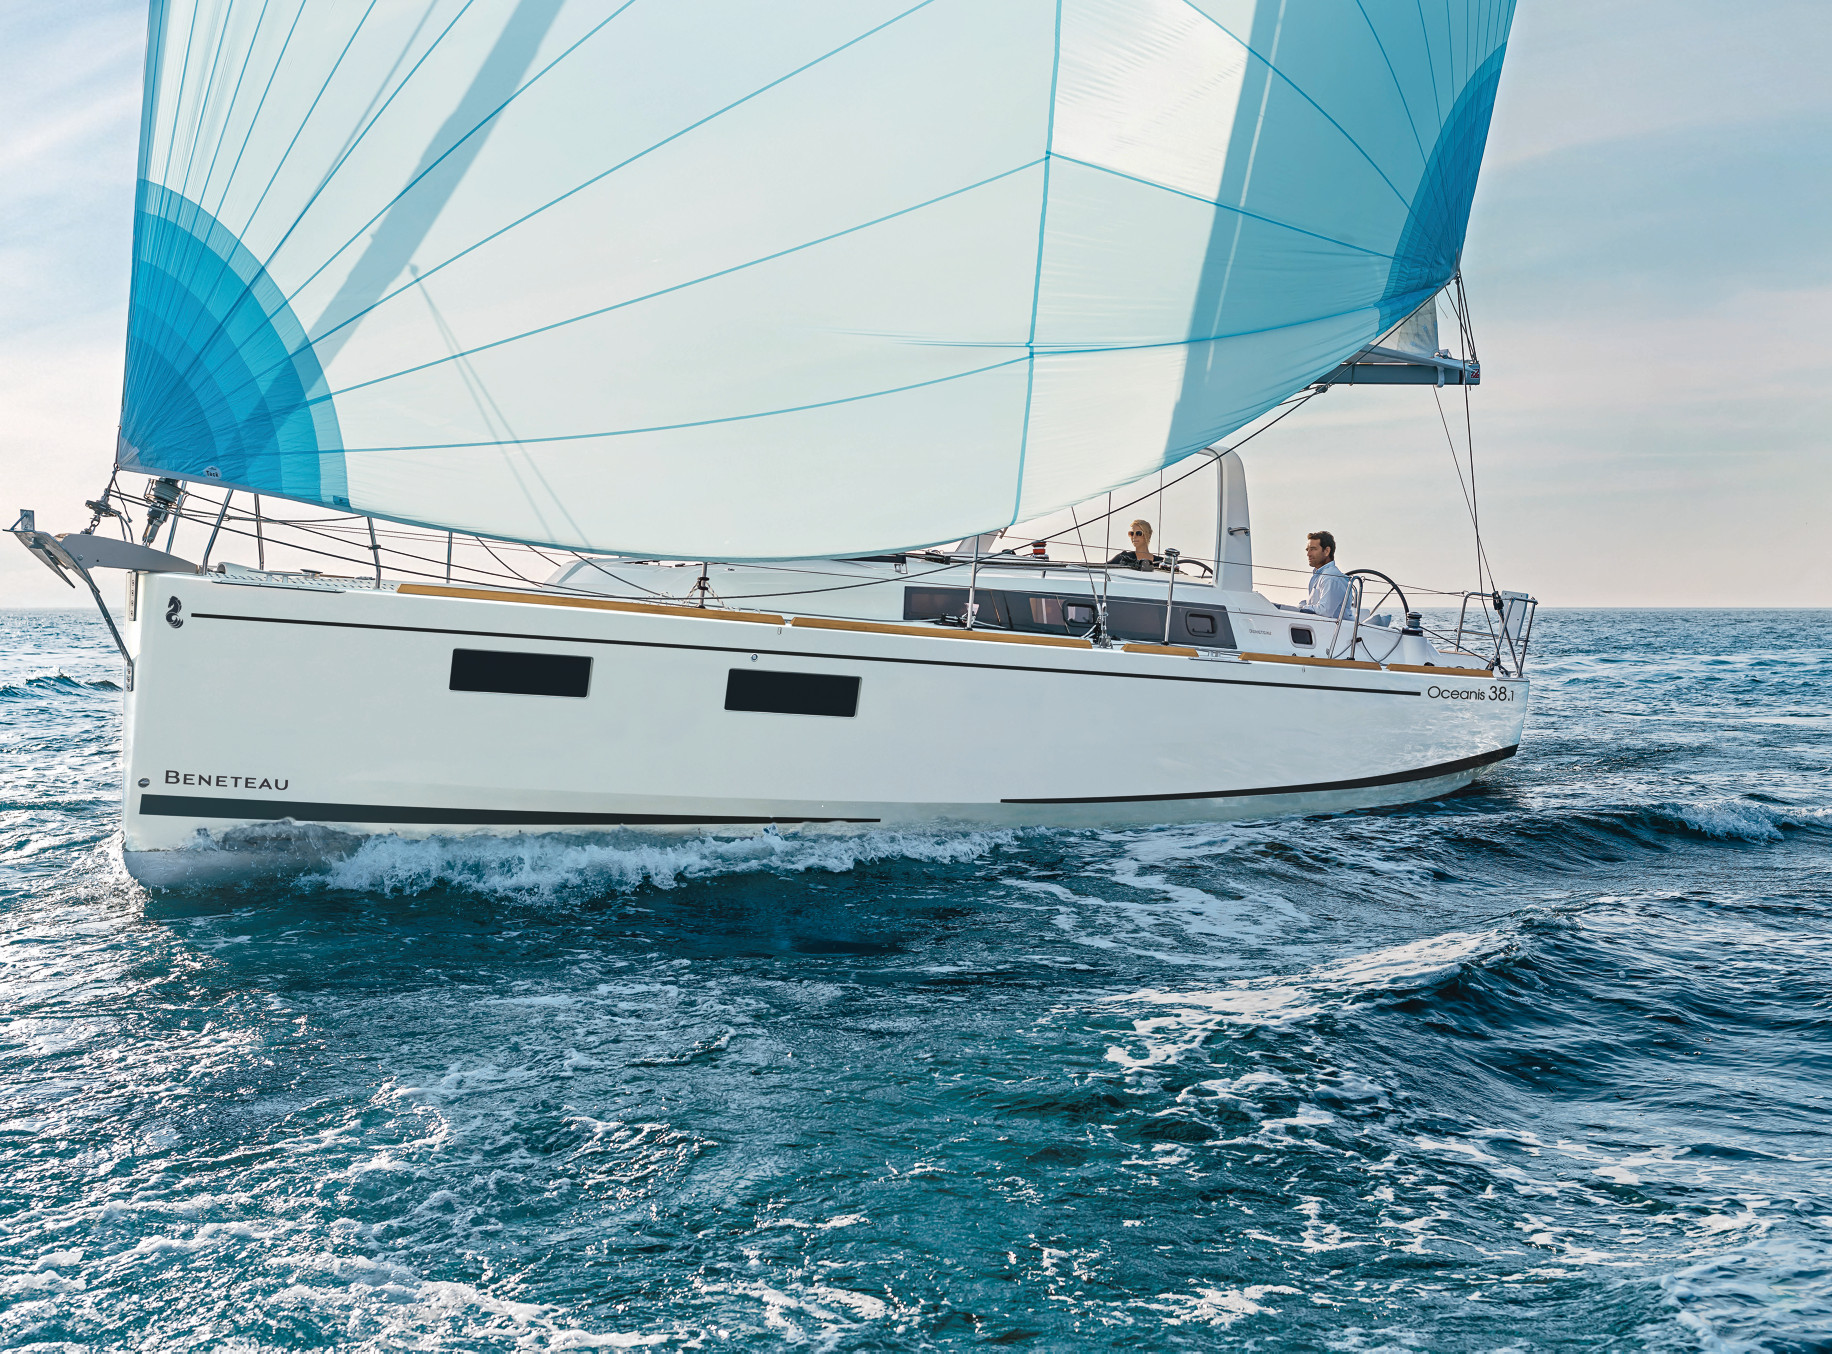 SALE SPECIAL! Beneteau Oceanis 38.1 $239,900 – NOW SOLD!